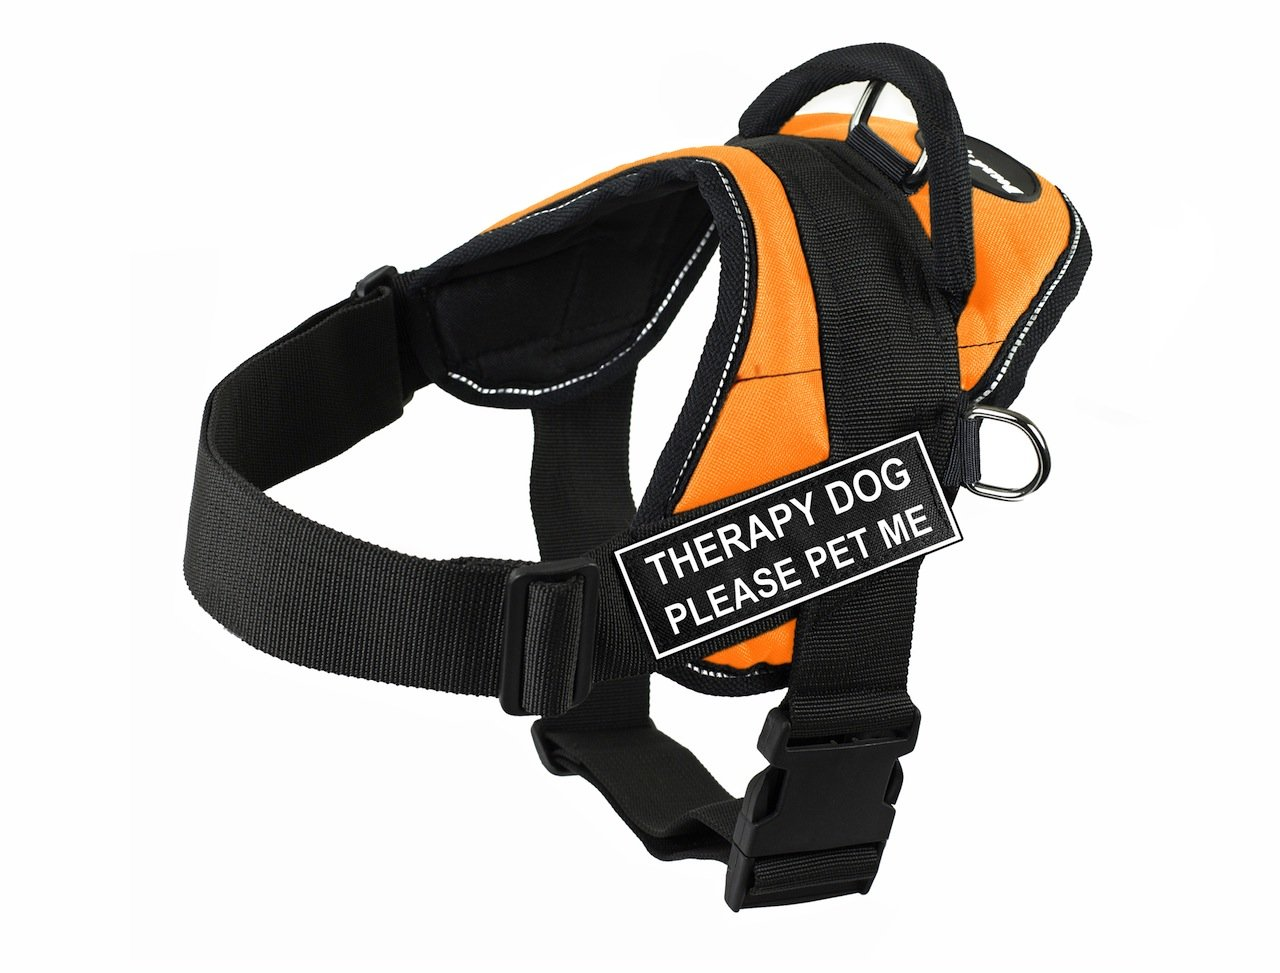 Dean & Tyler DT Fun Therapy Dog Please Pet Me  Harness with Reflective Trim, XX-Small, orange